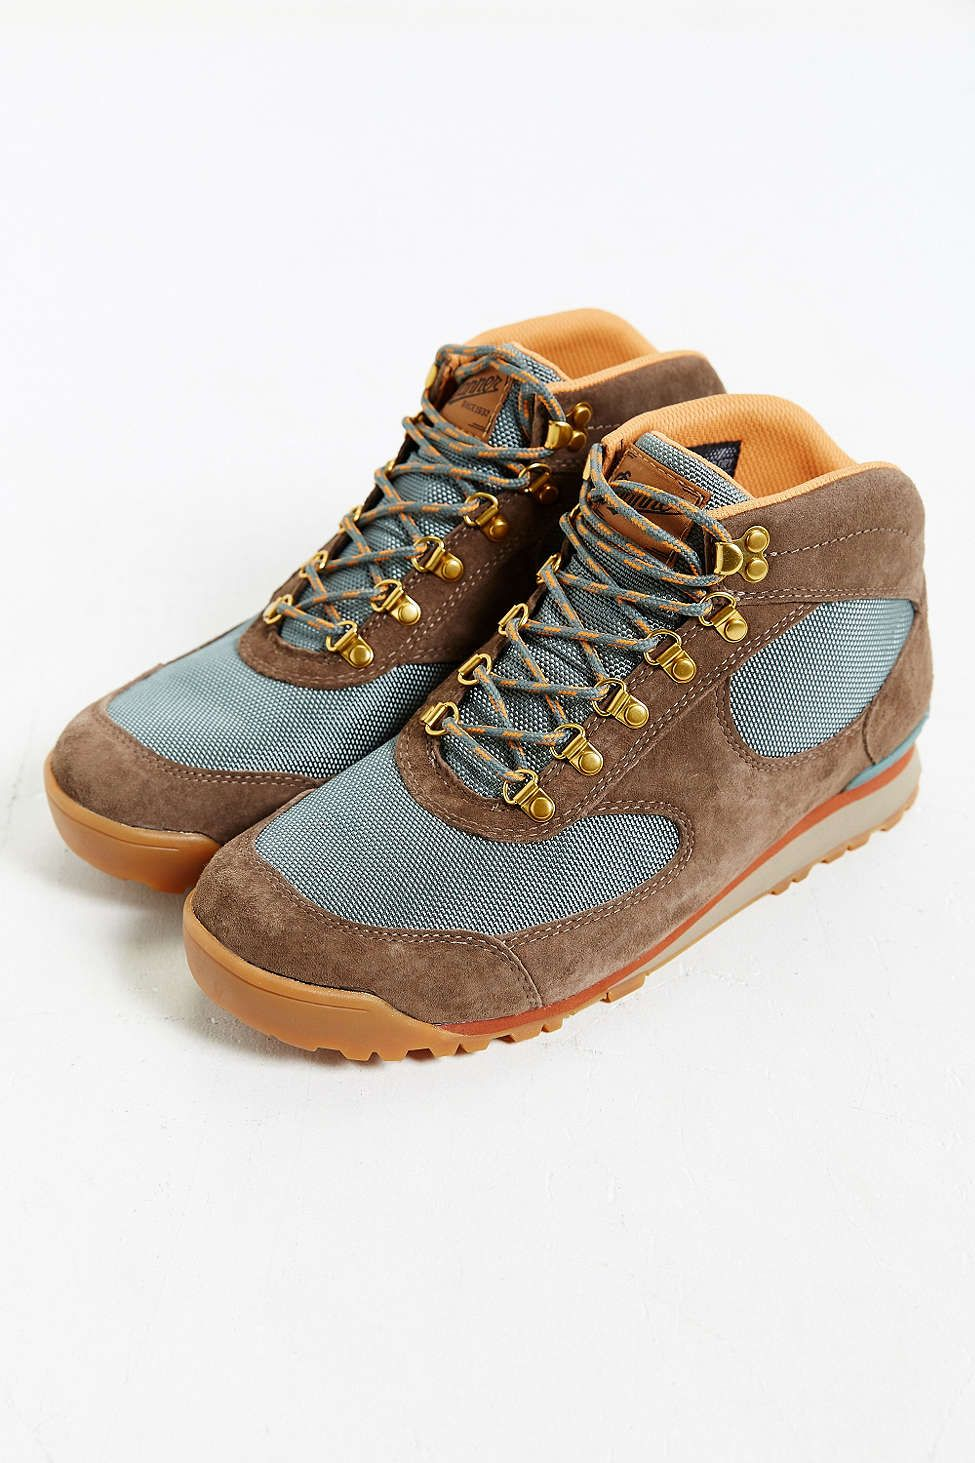 d908622416f Danner Jag Hiking Boot | Clothes | Hiking boots, Boots, Hiking